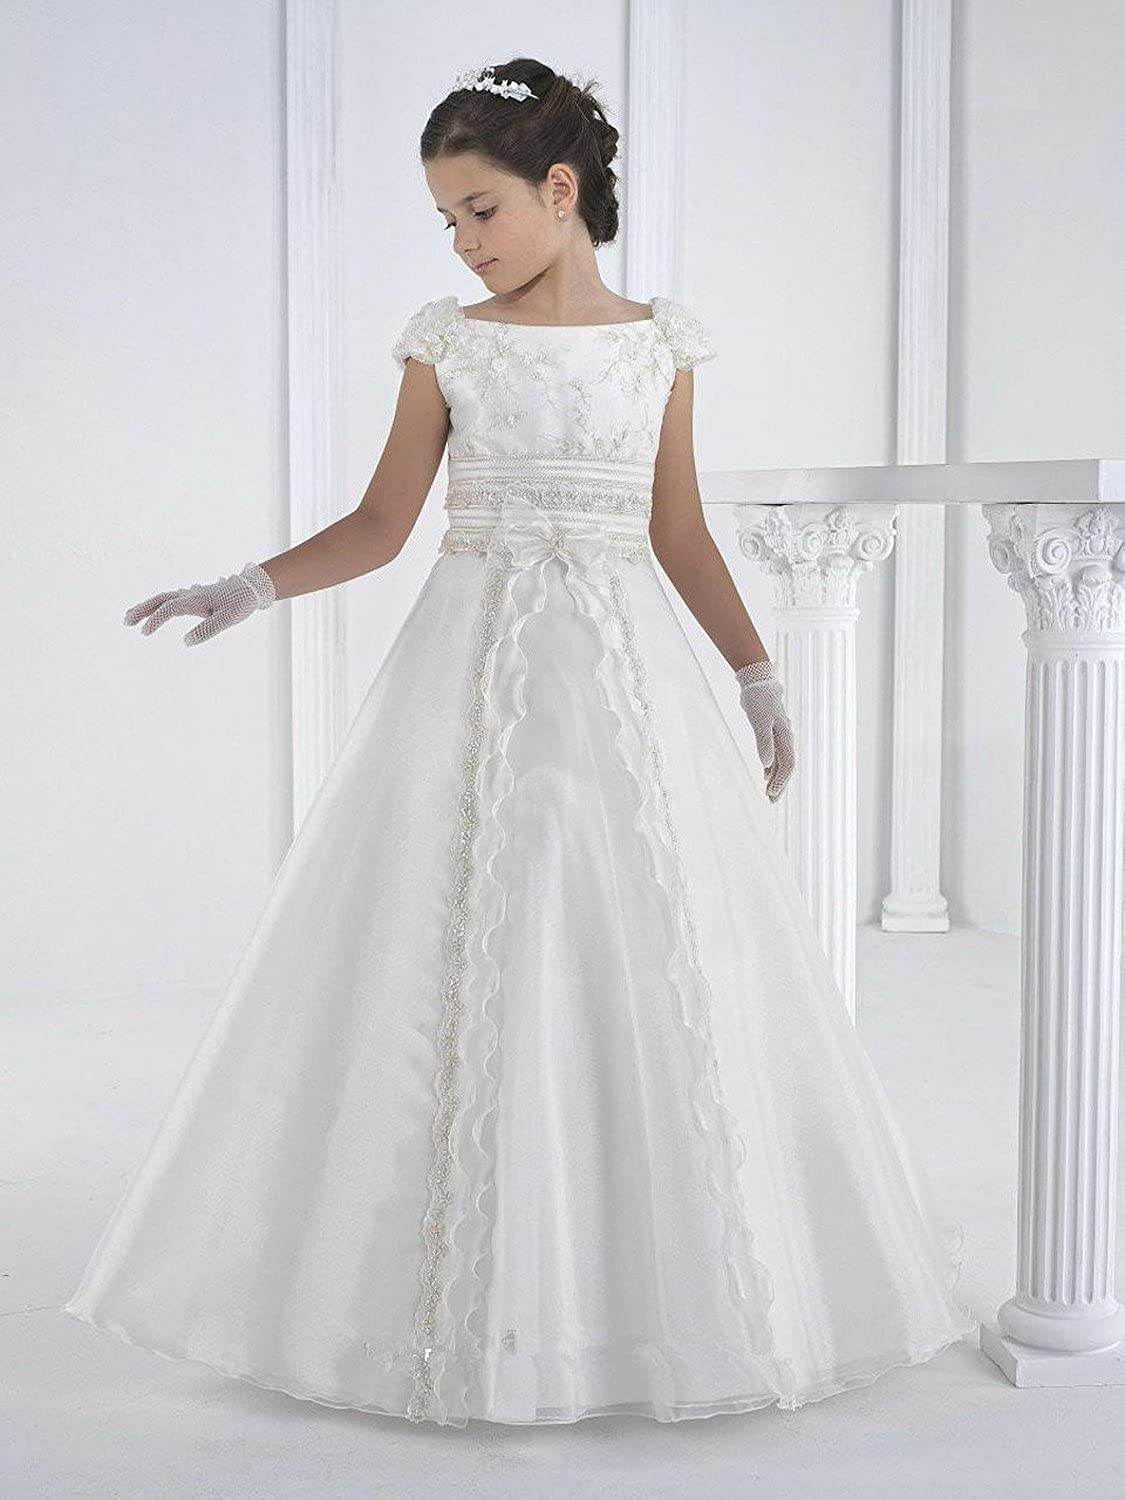 Amazon.com: MissProm White Kids First Communion Dress Long Flower ...